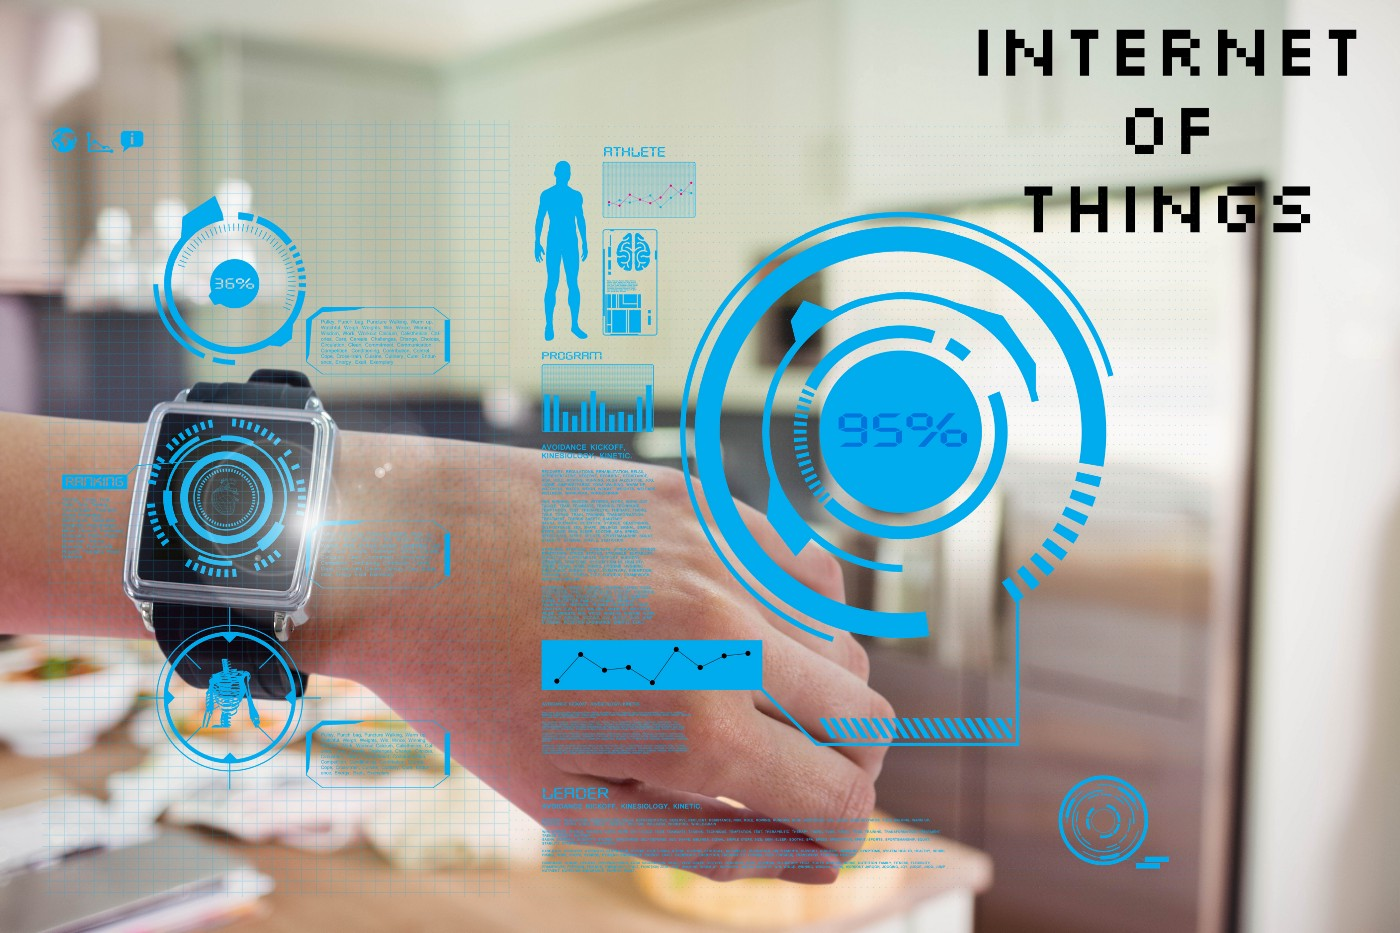 Internet of Things: The Top 5 IoT Trends for 2018 - hub:raum